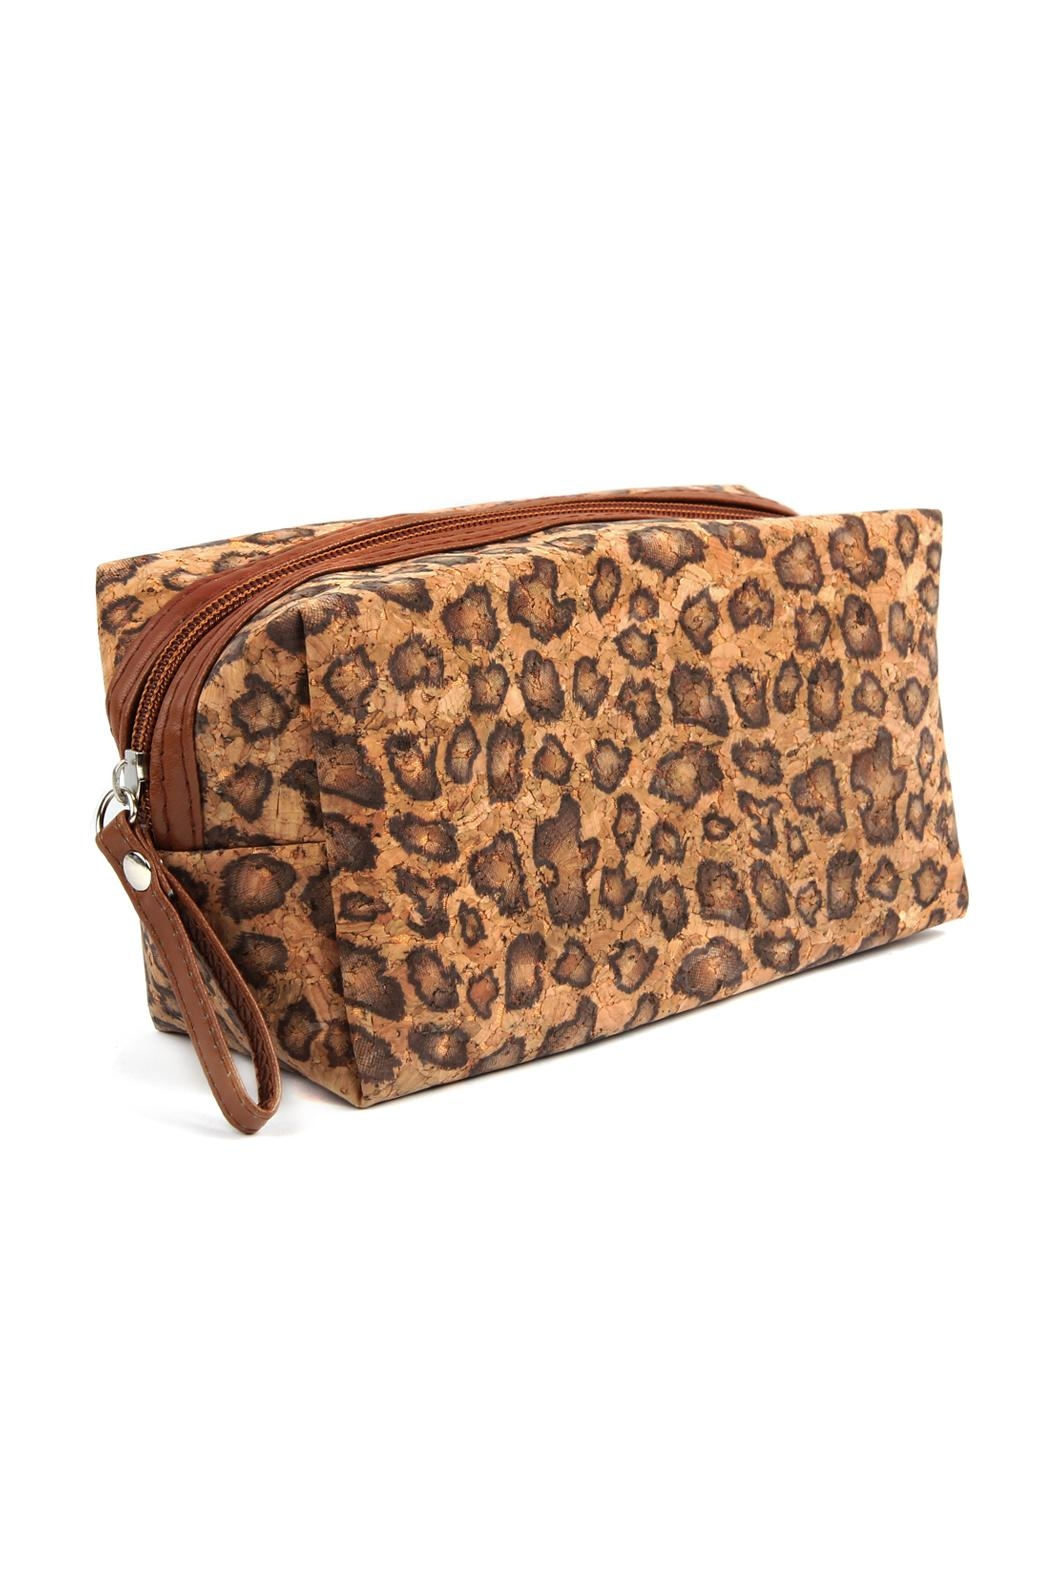 Riah Fashion Leopard--Cork Printed-Cosmetic-Bag - Front Full Image